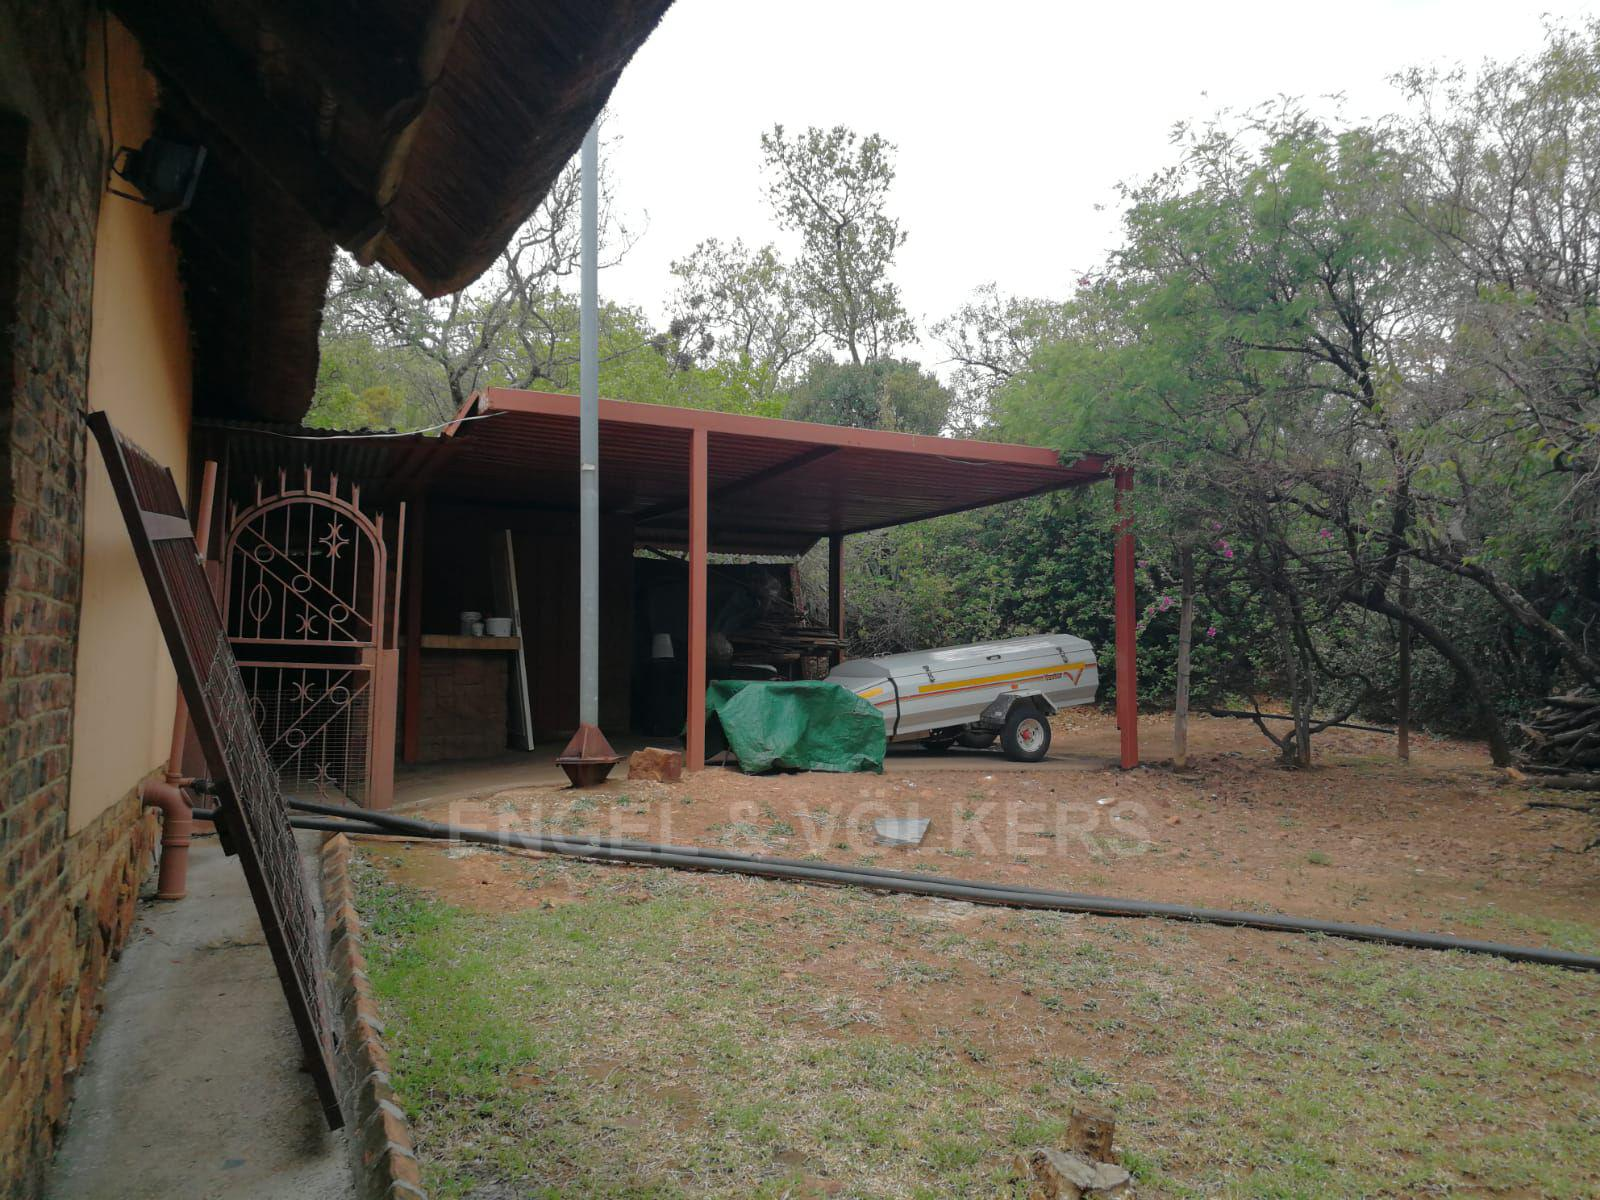 Land in Hartbeespoort Dam Area - Outside store rooms and sheds